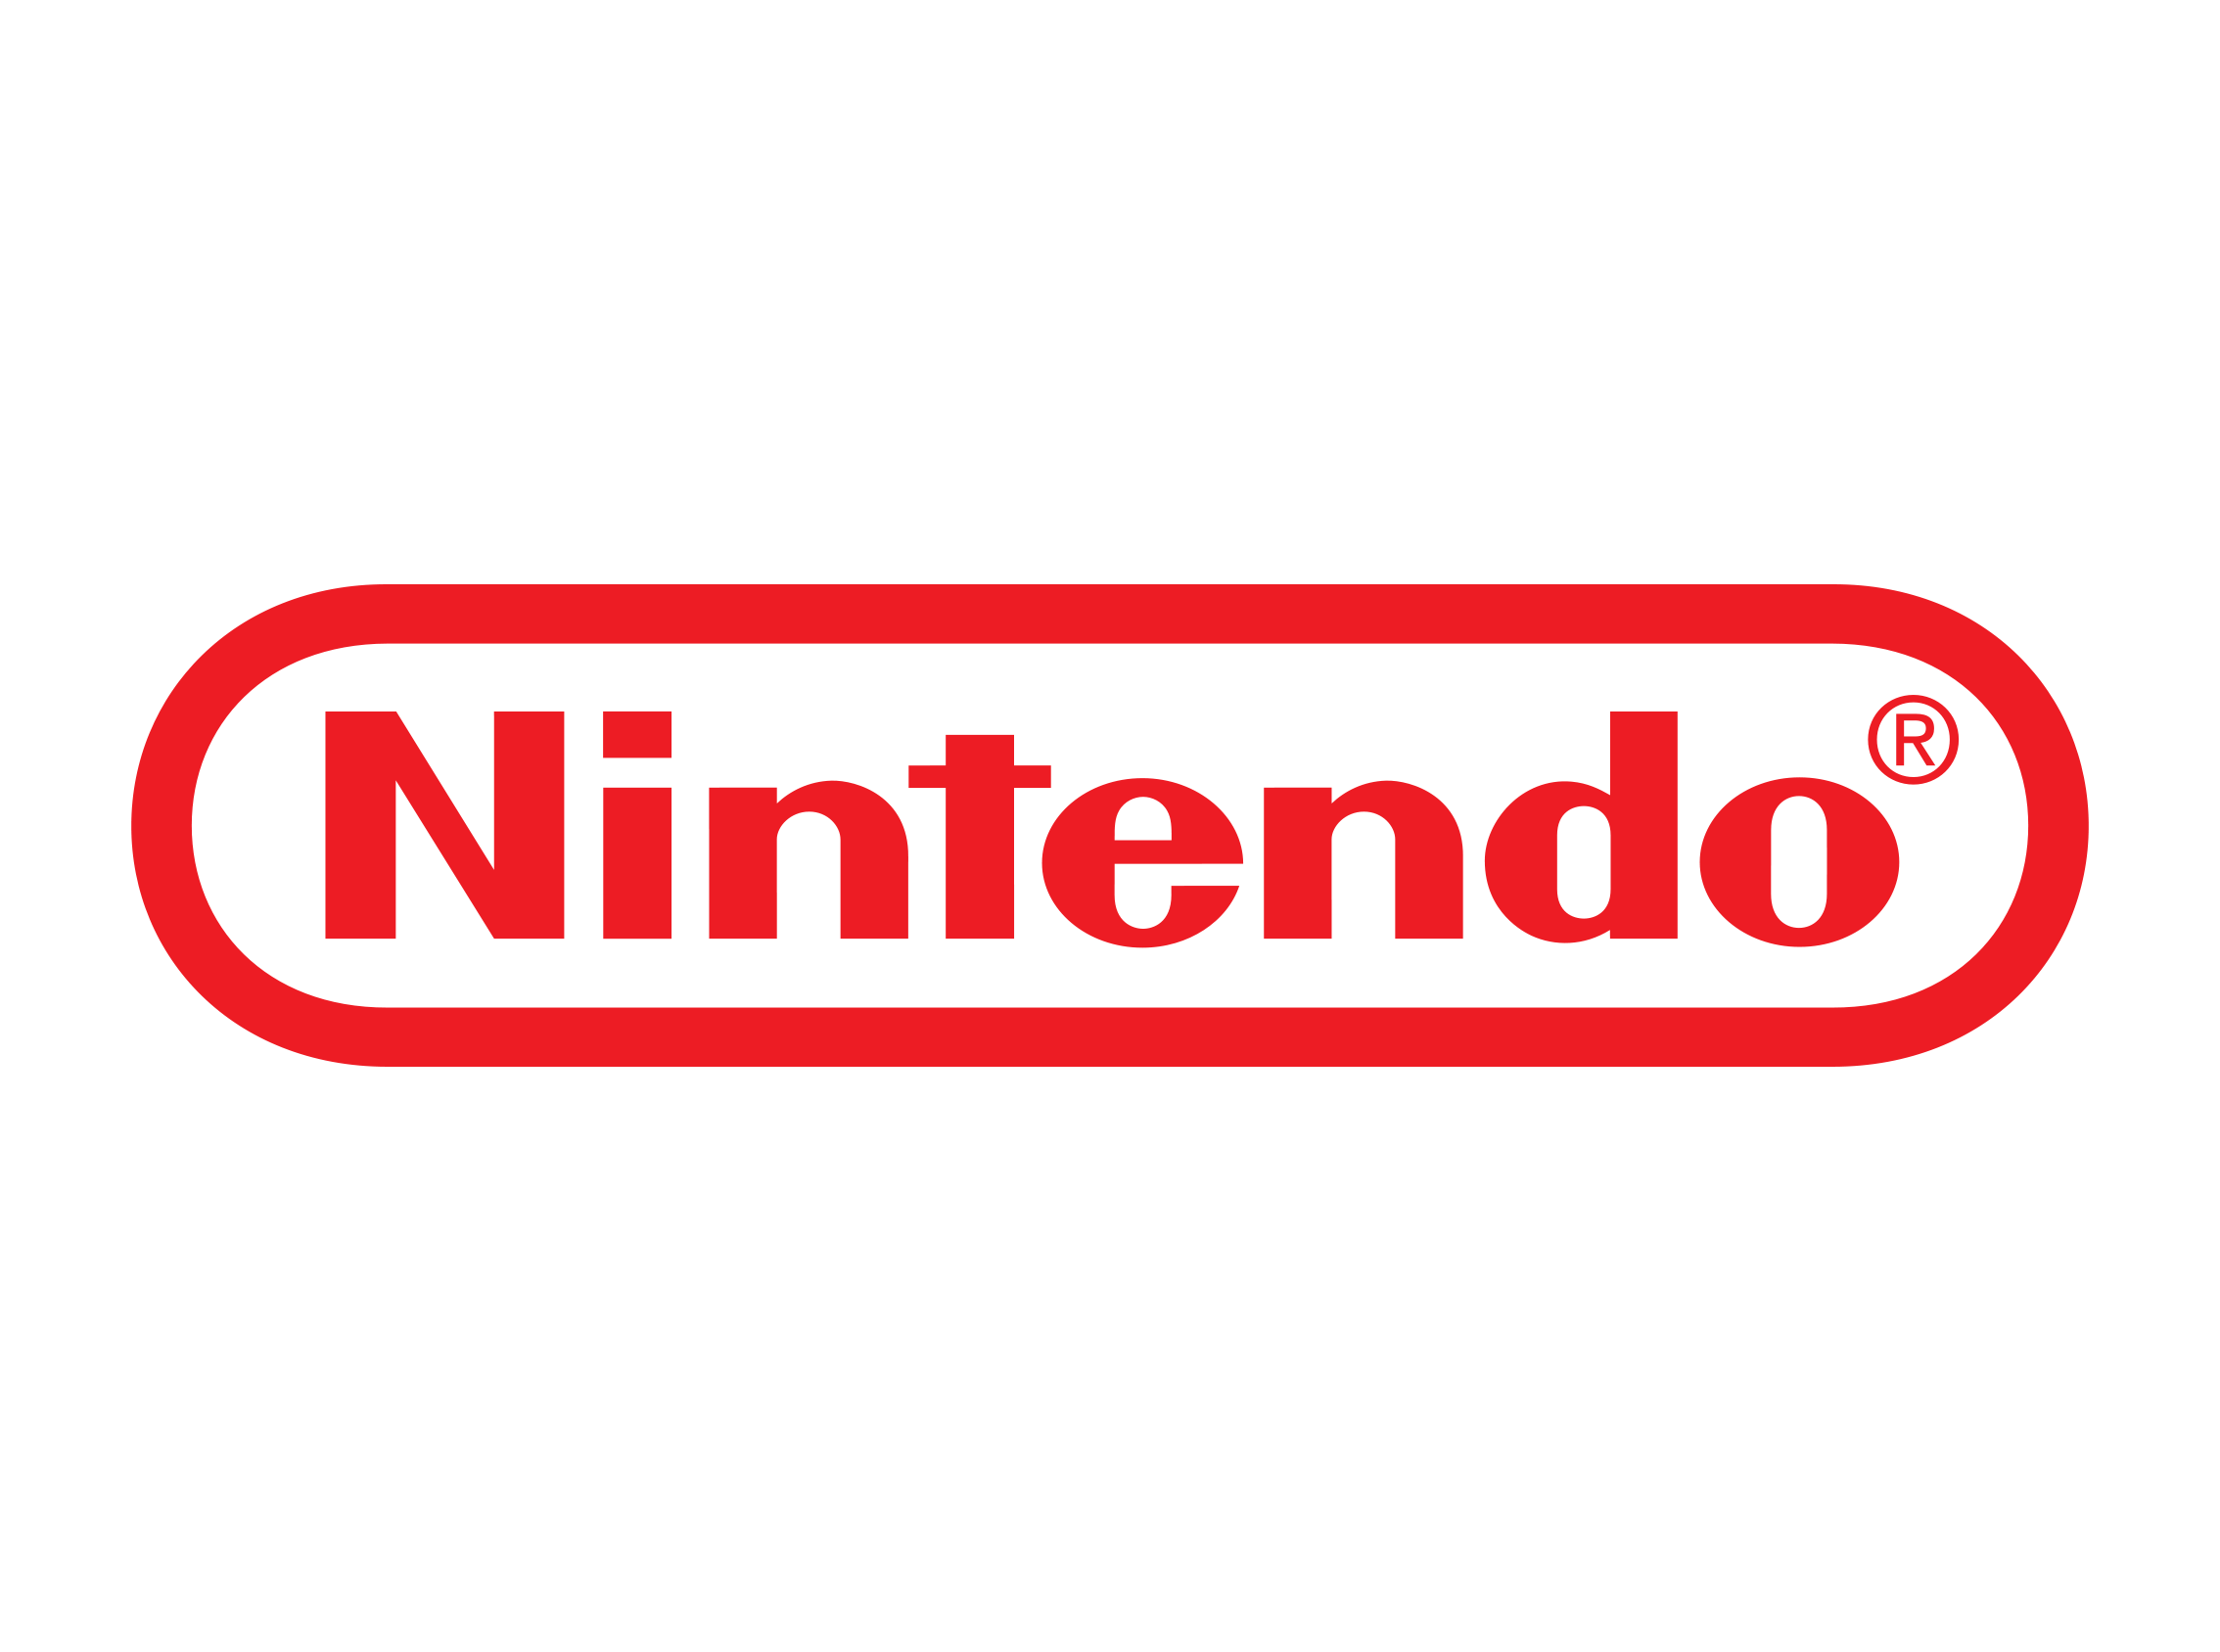 Nintendo S New Retail Signage Puts The Wii U And 3ds